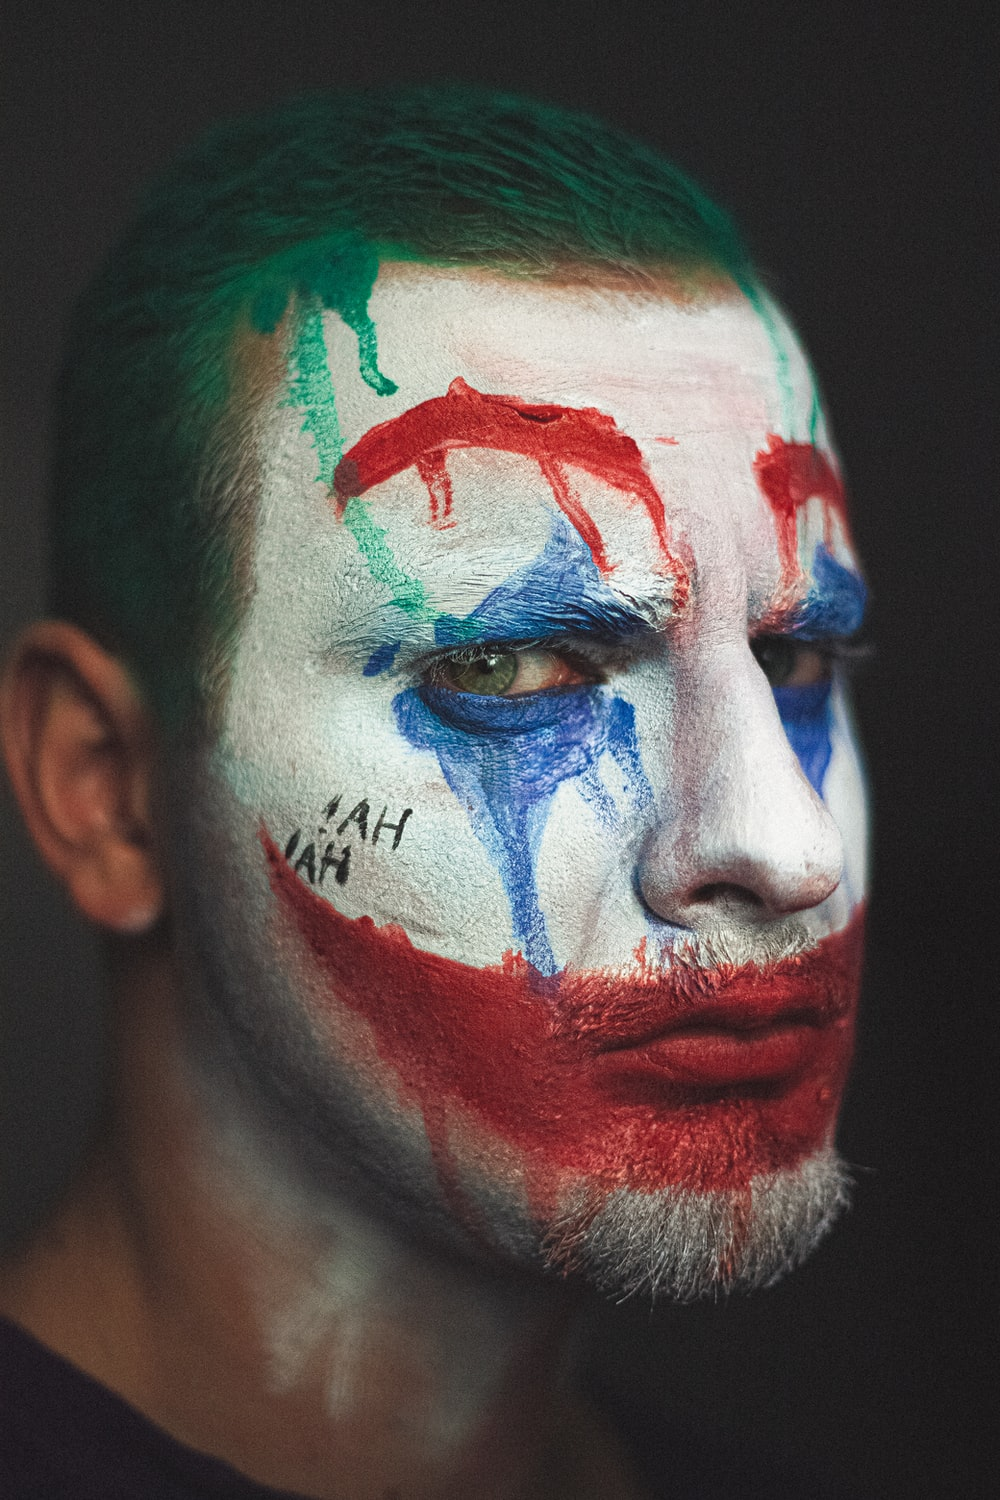 man with blue and red face paint